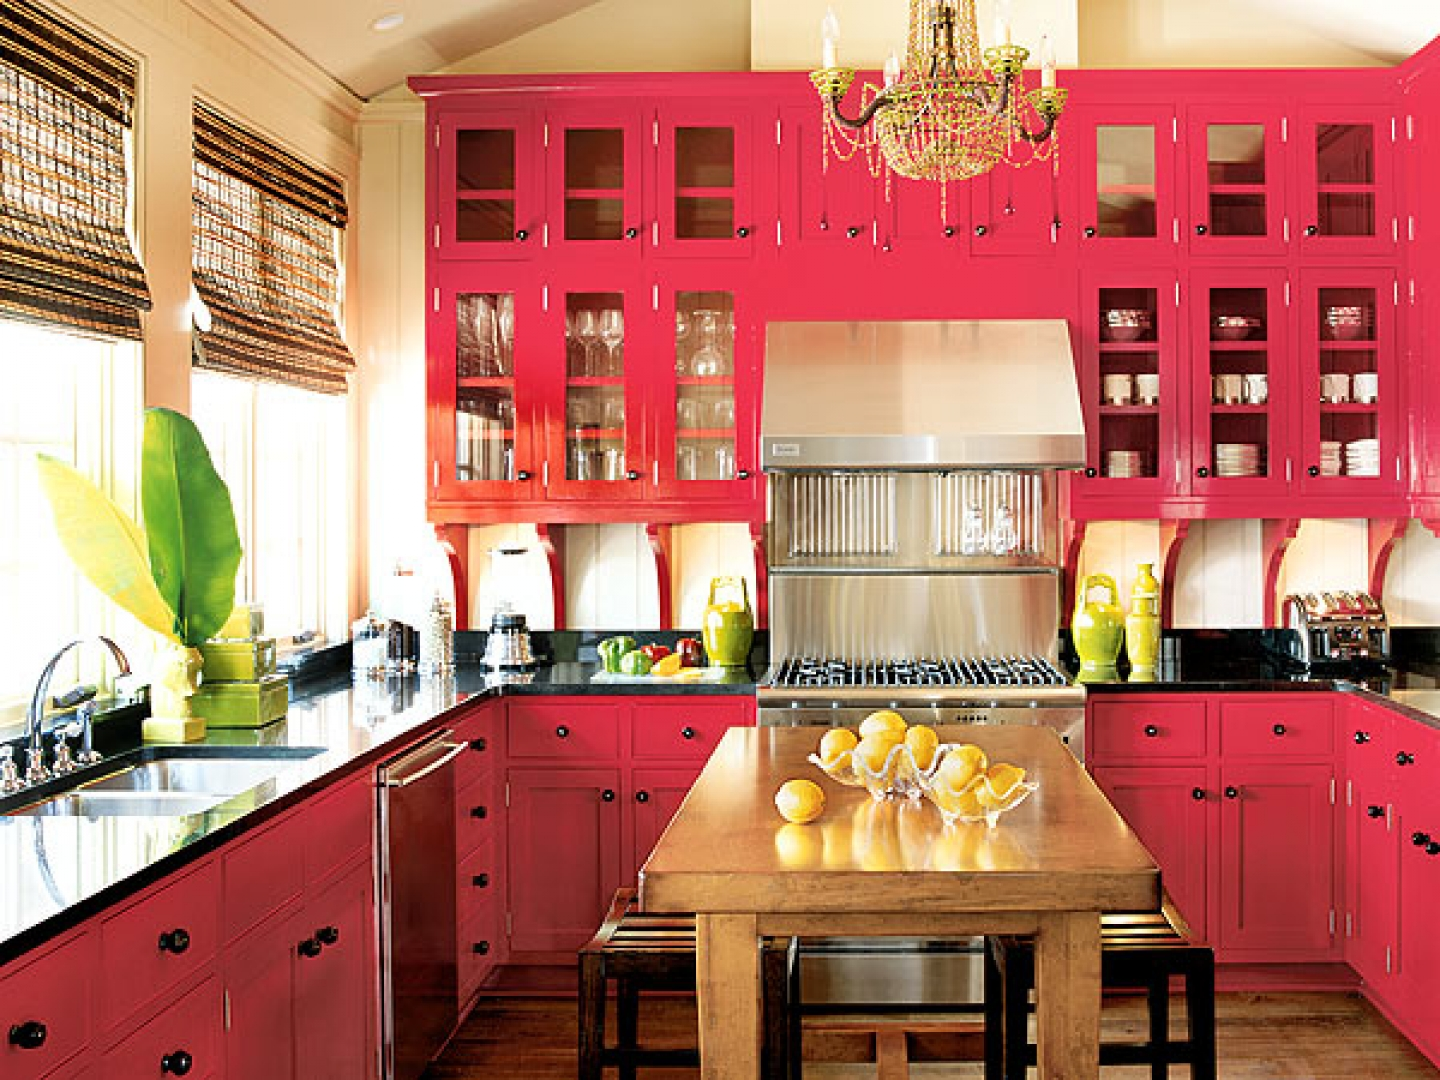 Red Country Kitchen Decorating Ideas modren red country kitchen decorating ideas kitchens on pinterest